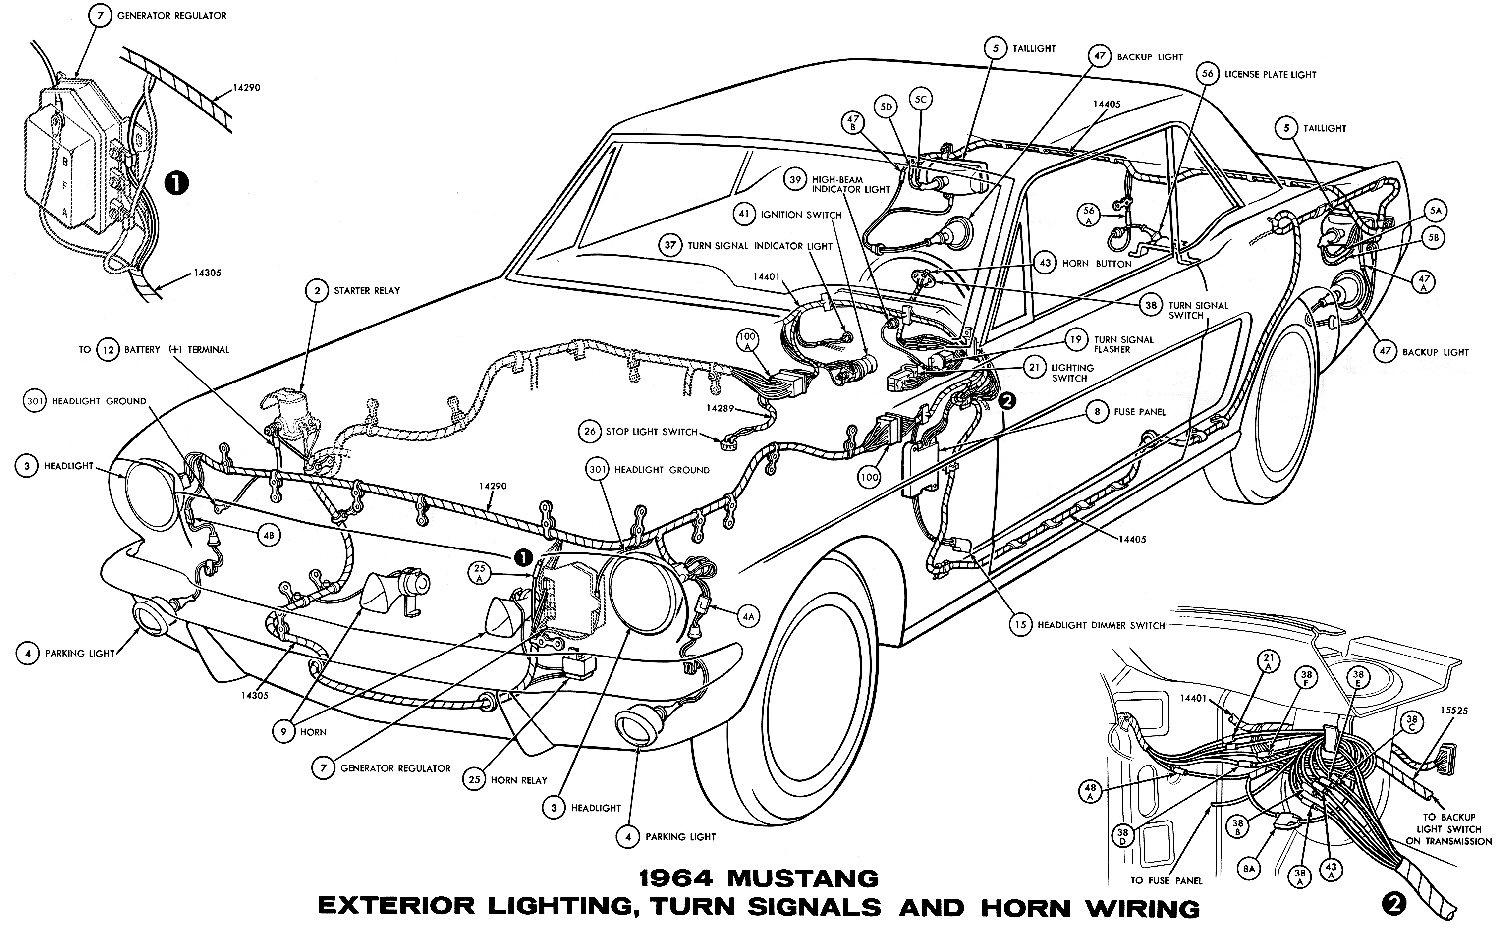 67 Mustang Horn Wiring Diagram Library 1965 Headlight Schematic Sm1964h 1964 Exterior Lighting Turn Signals And Horns Pictorial Or Diagrams